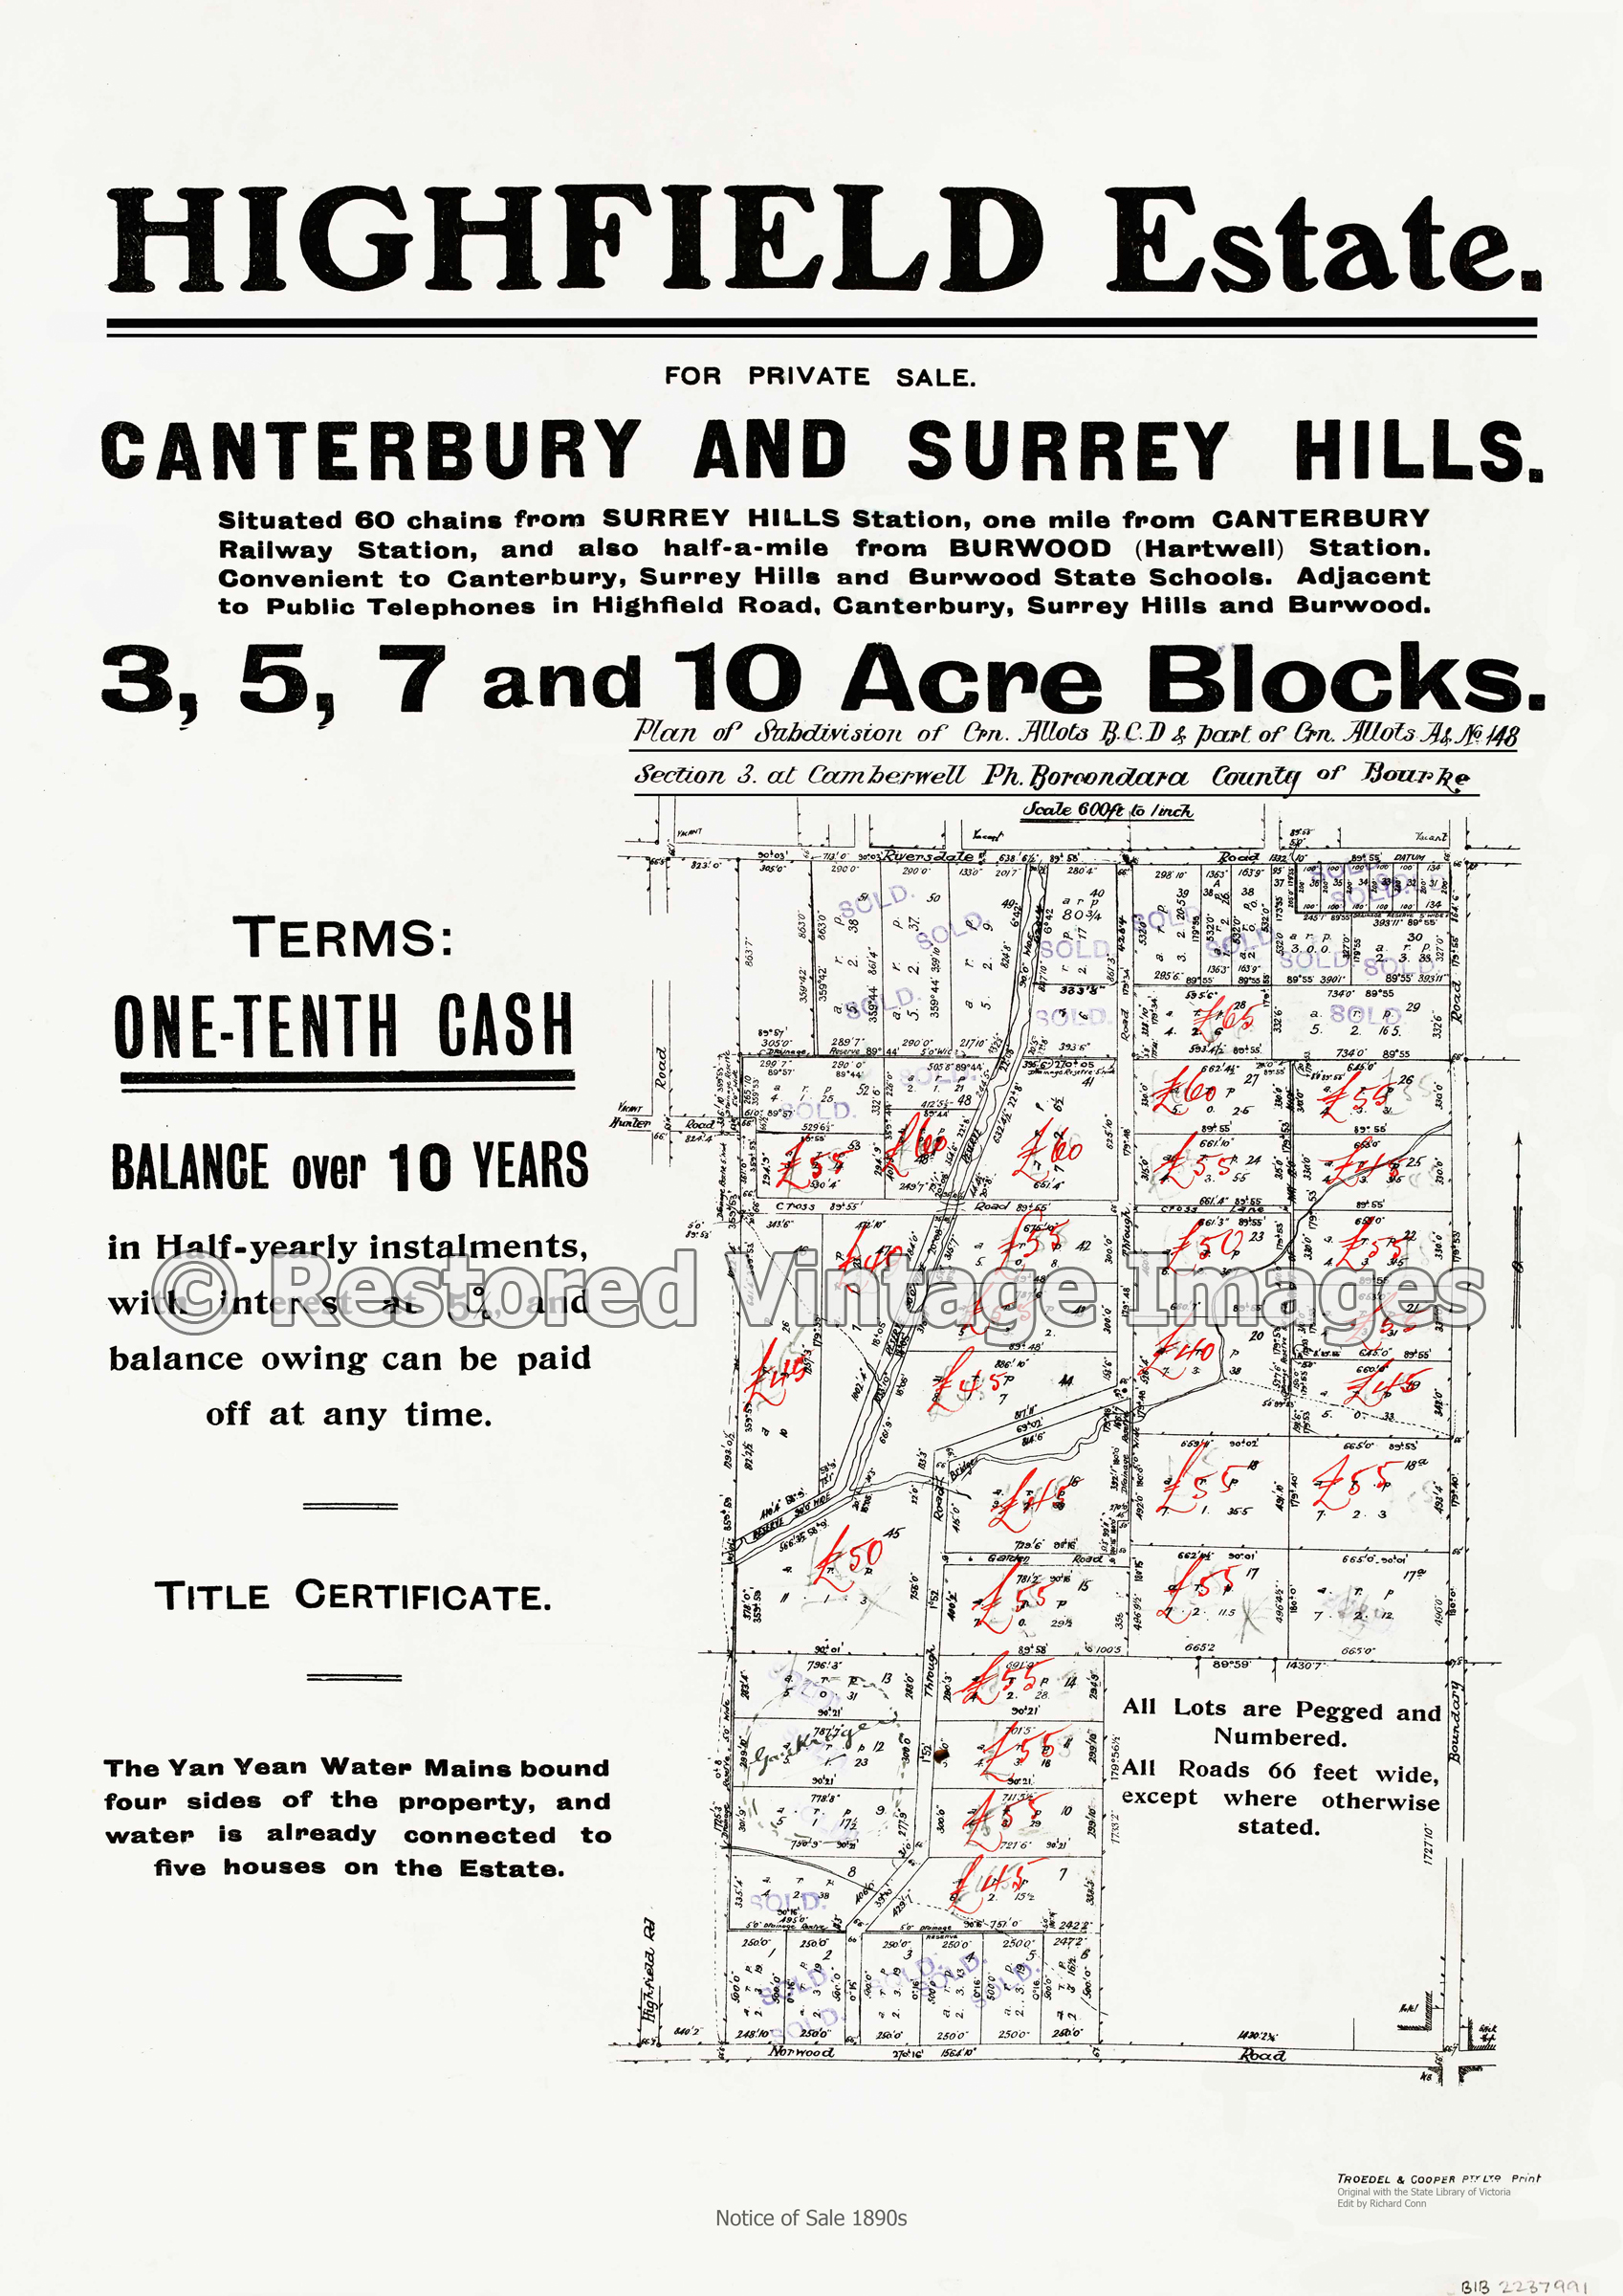 Highfield Estate 1890s – Private Sale Canterbury And Surrey Hills